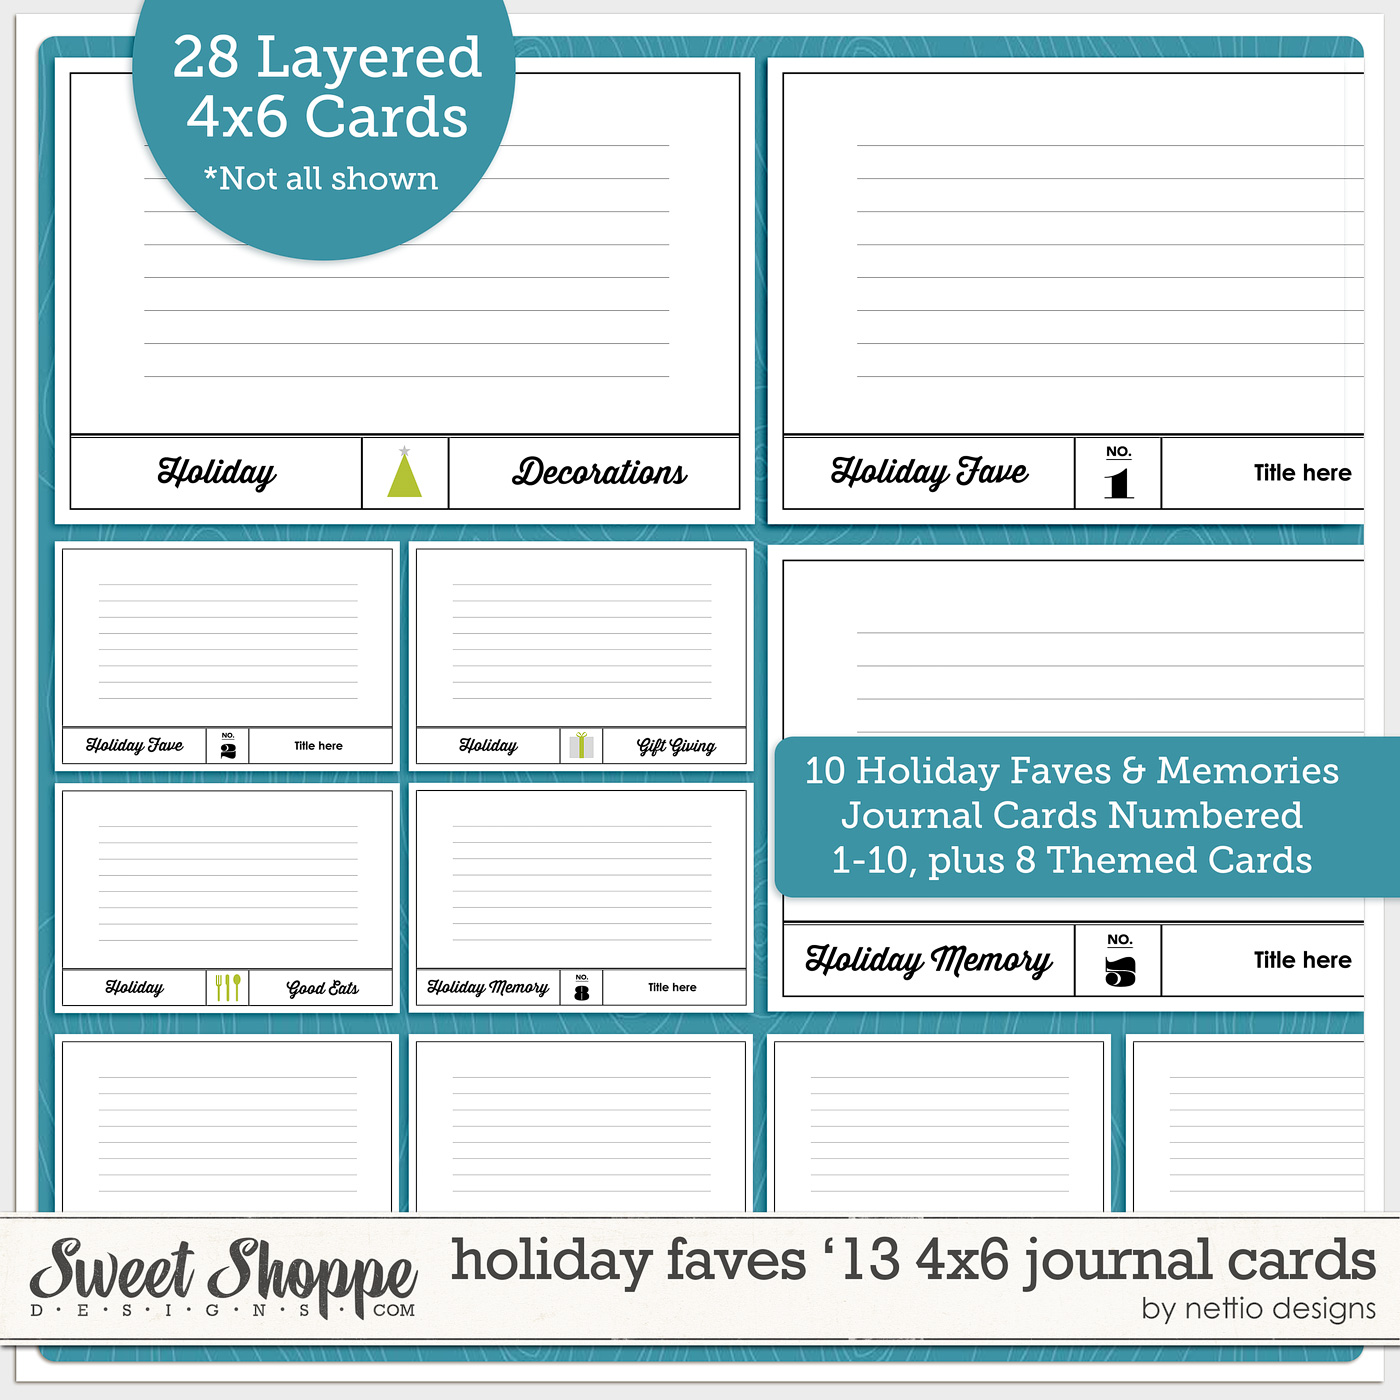 nettiodesigns_HolidayFaves13-4x6Cards-prev-1400